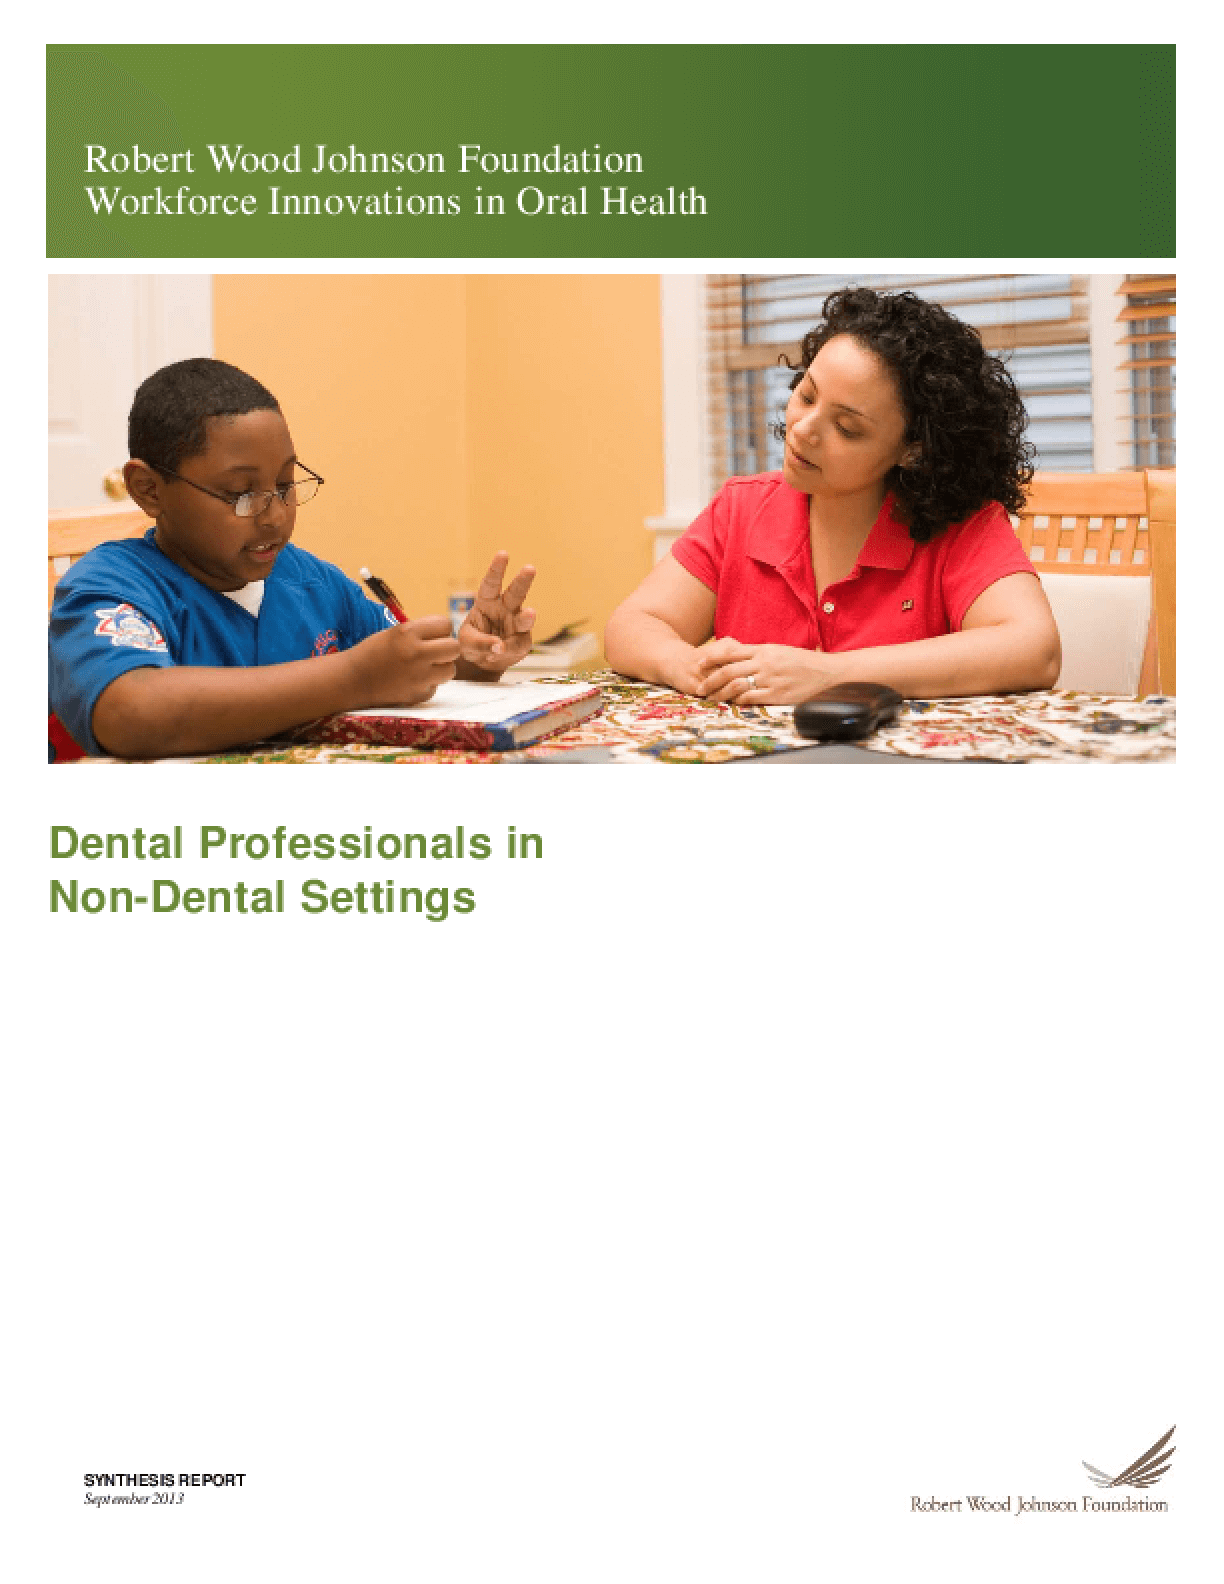 Dental Professionals in Non-Dental Settings